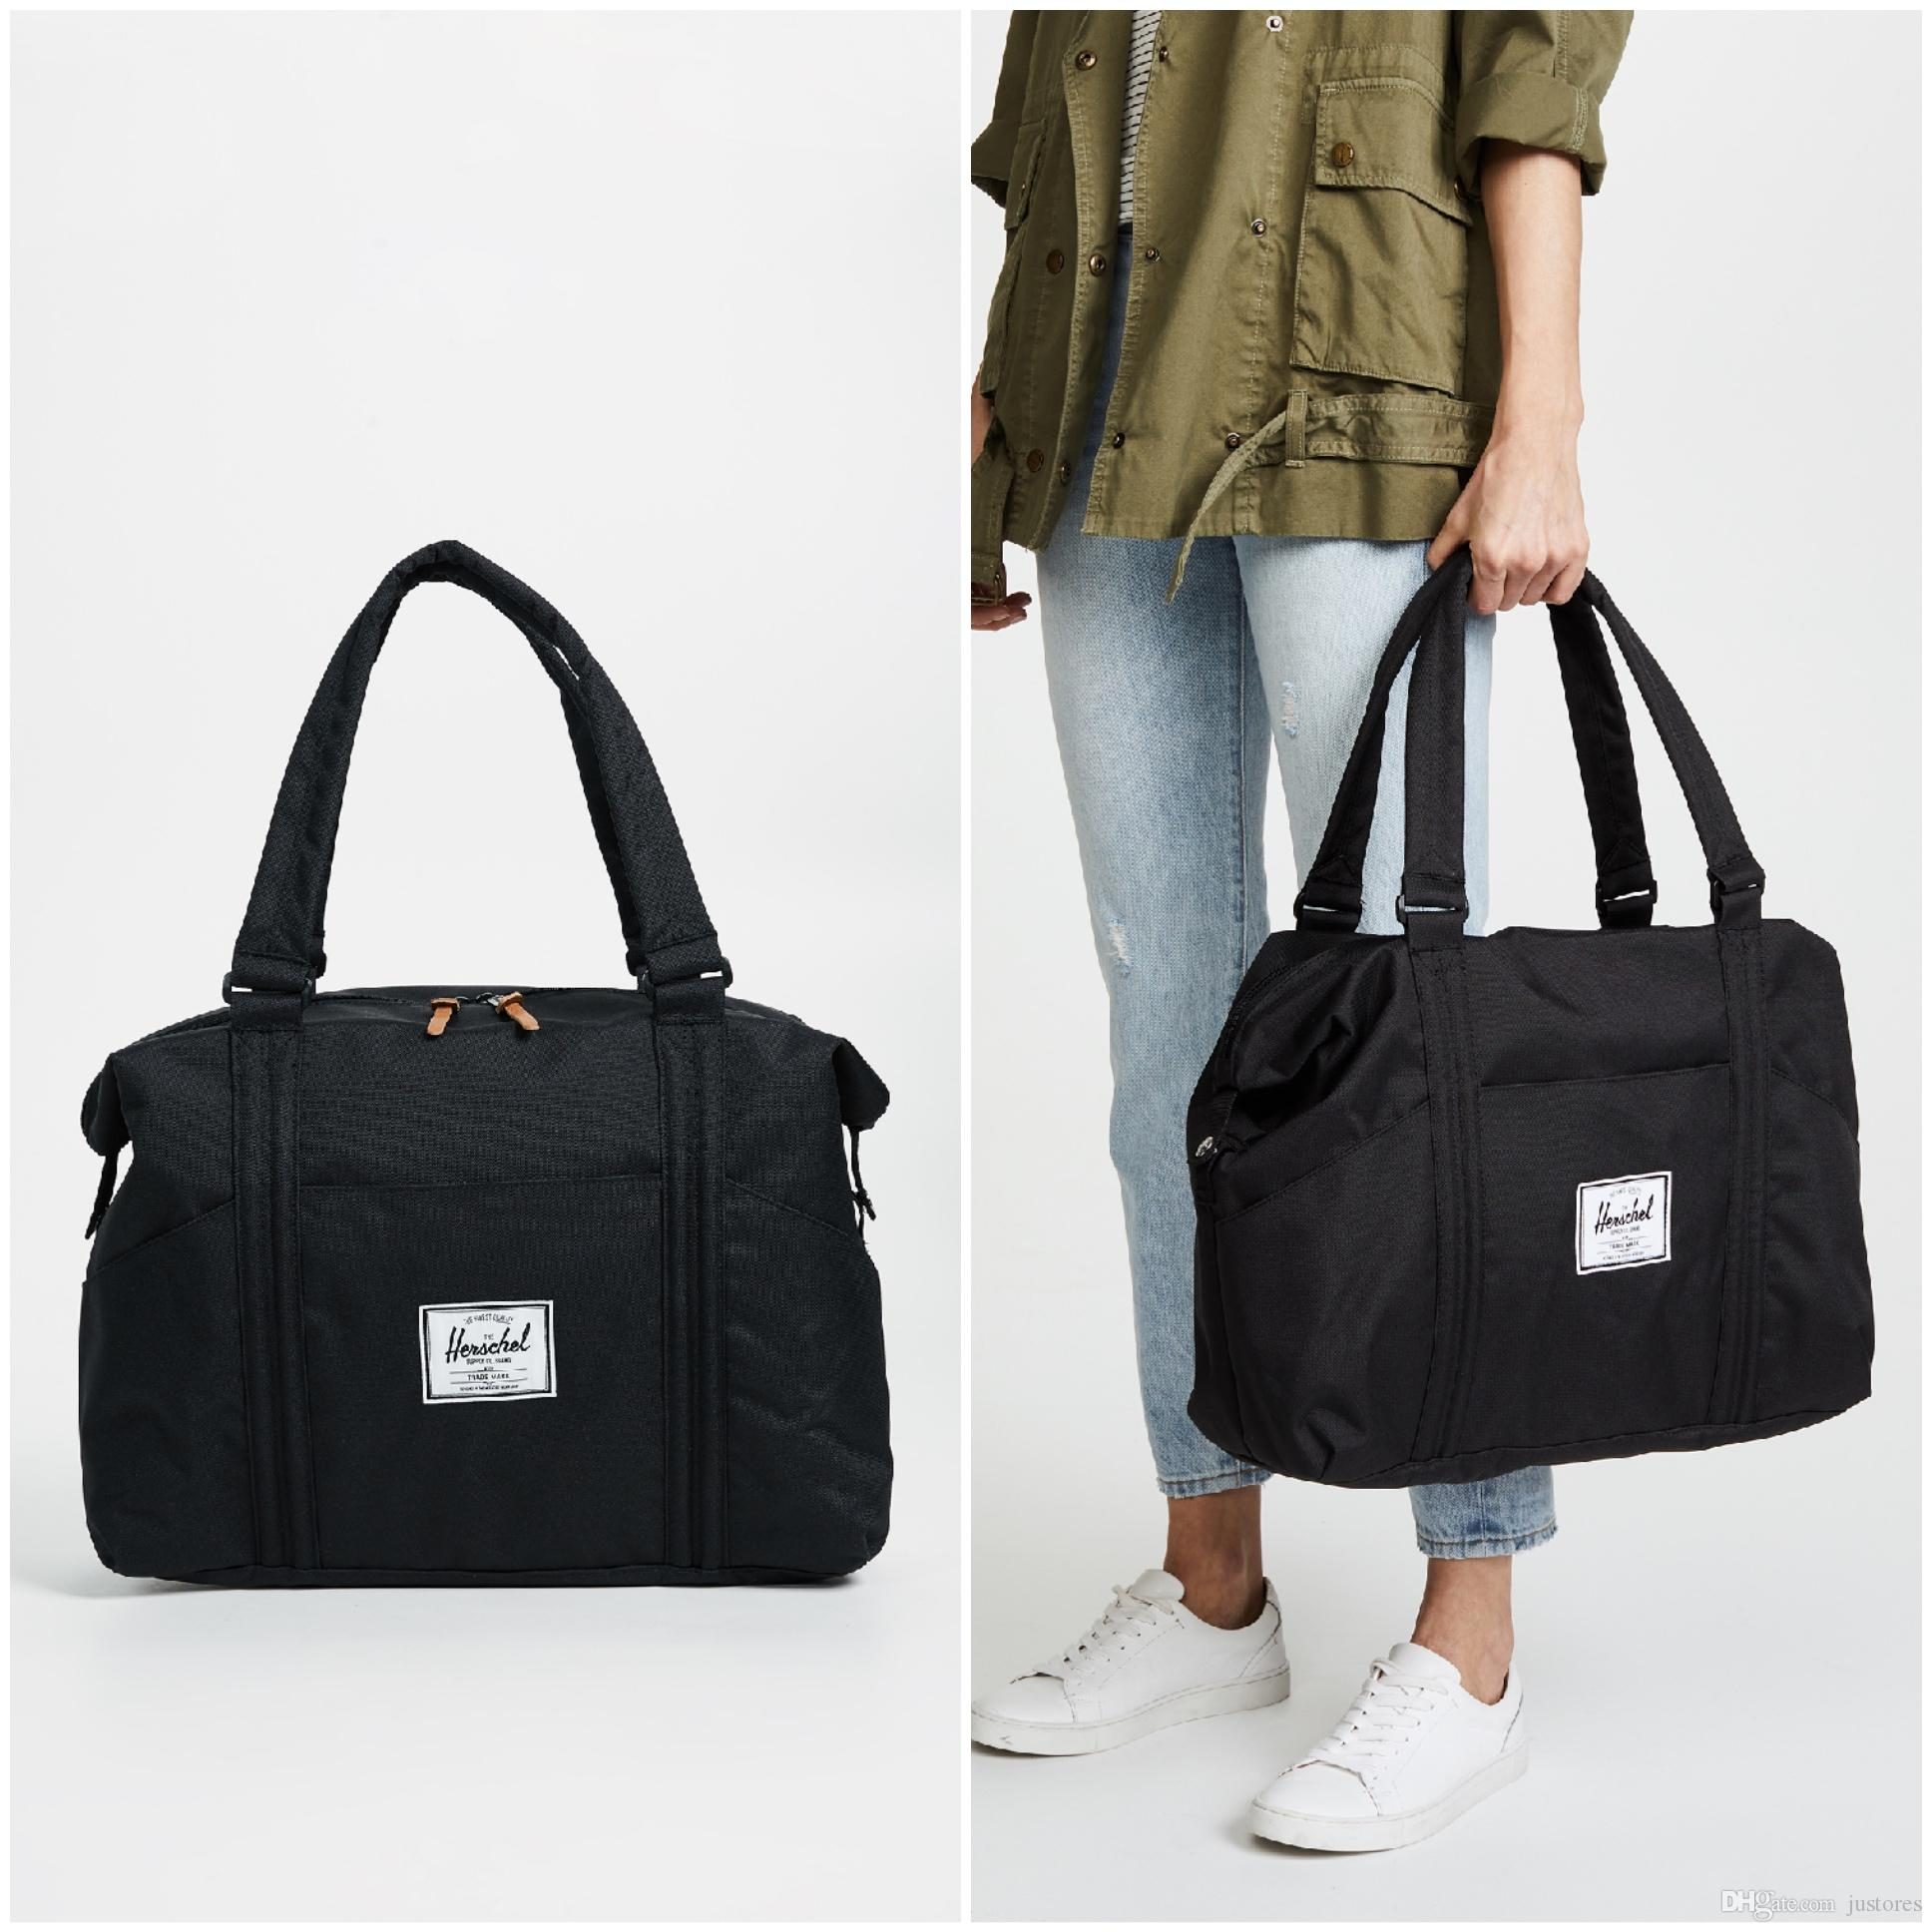 9a2f6eb62d7c 2019 Unisex Fashion Designer Bag Herschel Supply Co Strand Duffle Totes Bag  Man Handbag Luggage Travel Bags Woman Tote Bag Ladies Bags Leather Purses  From ...